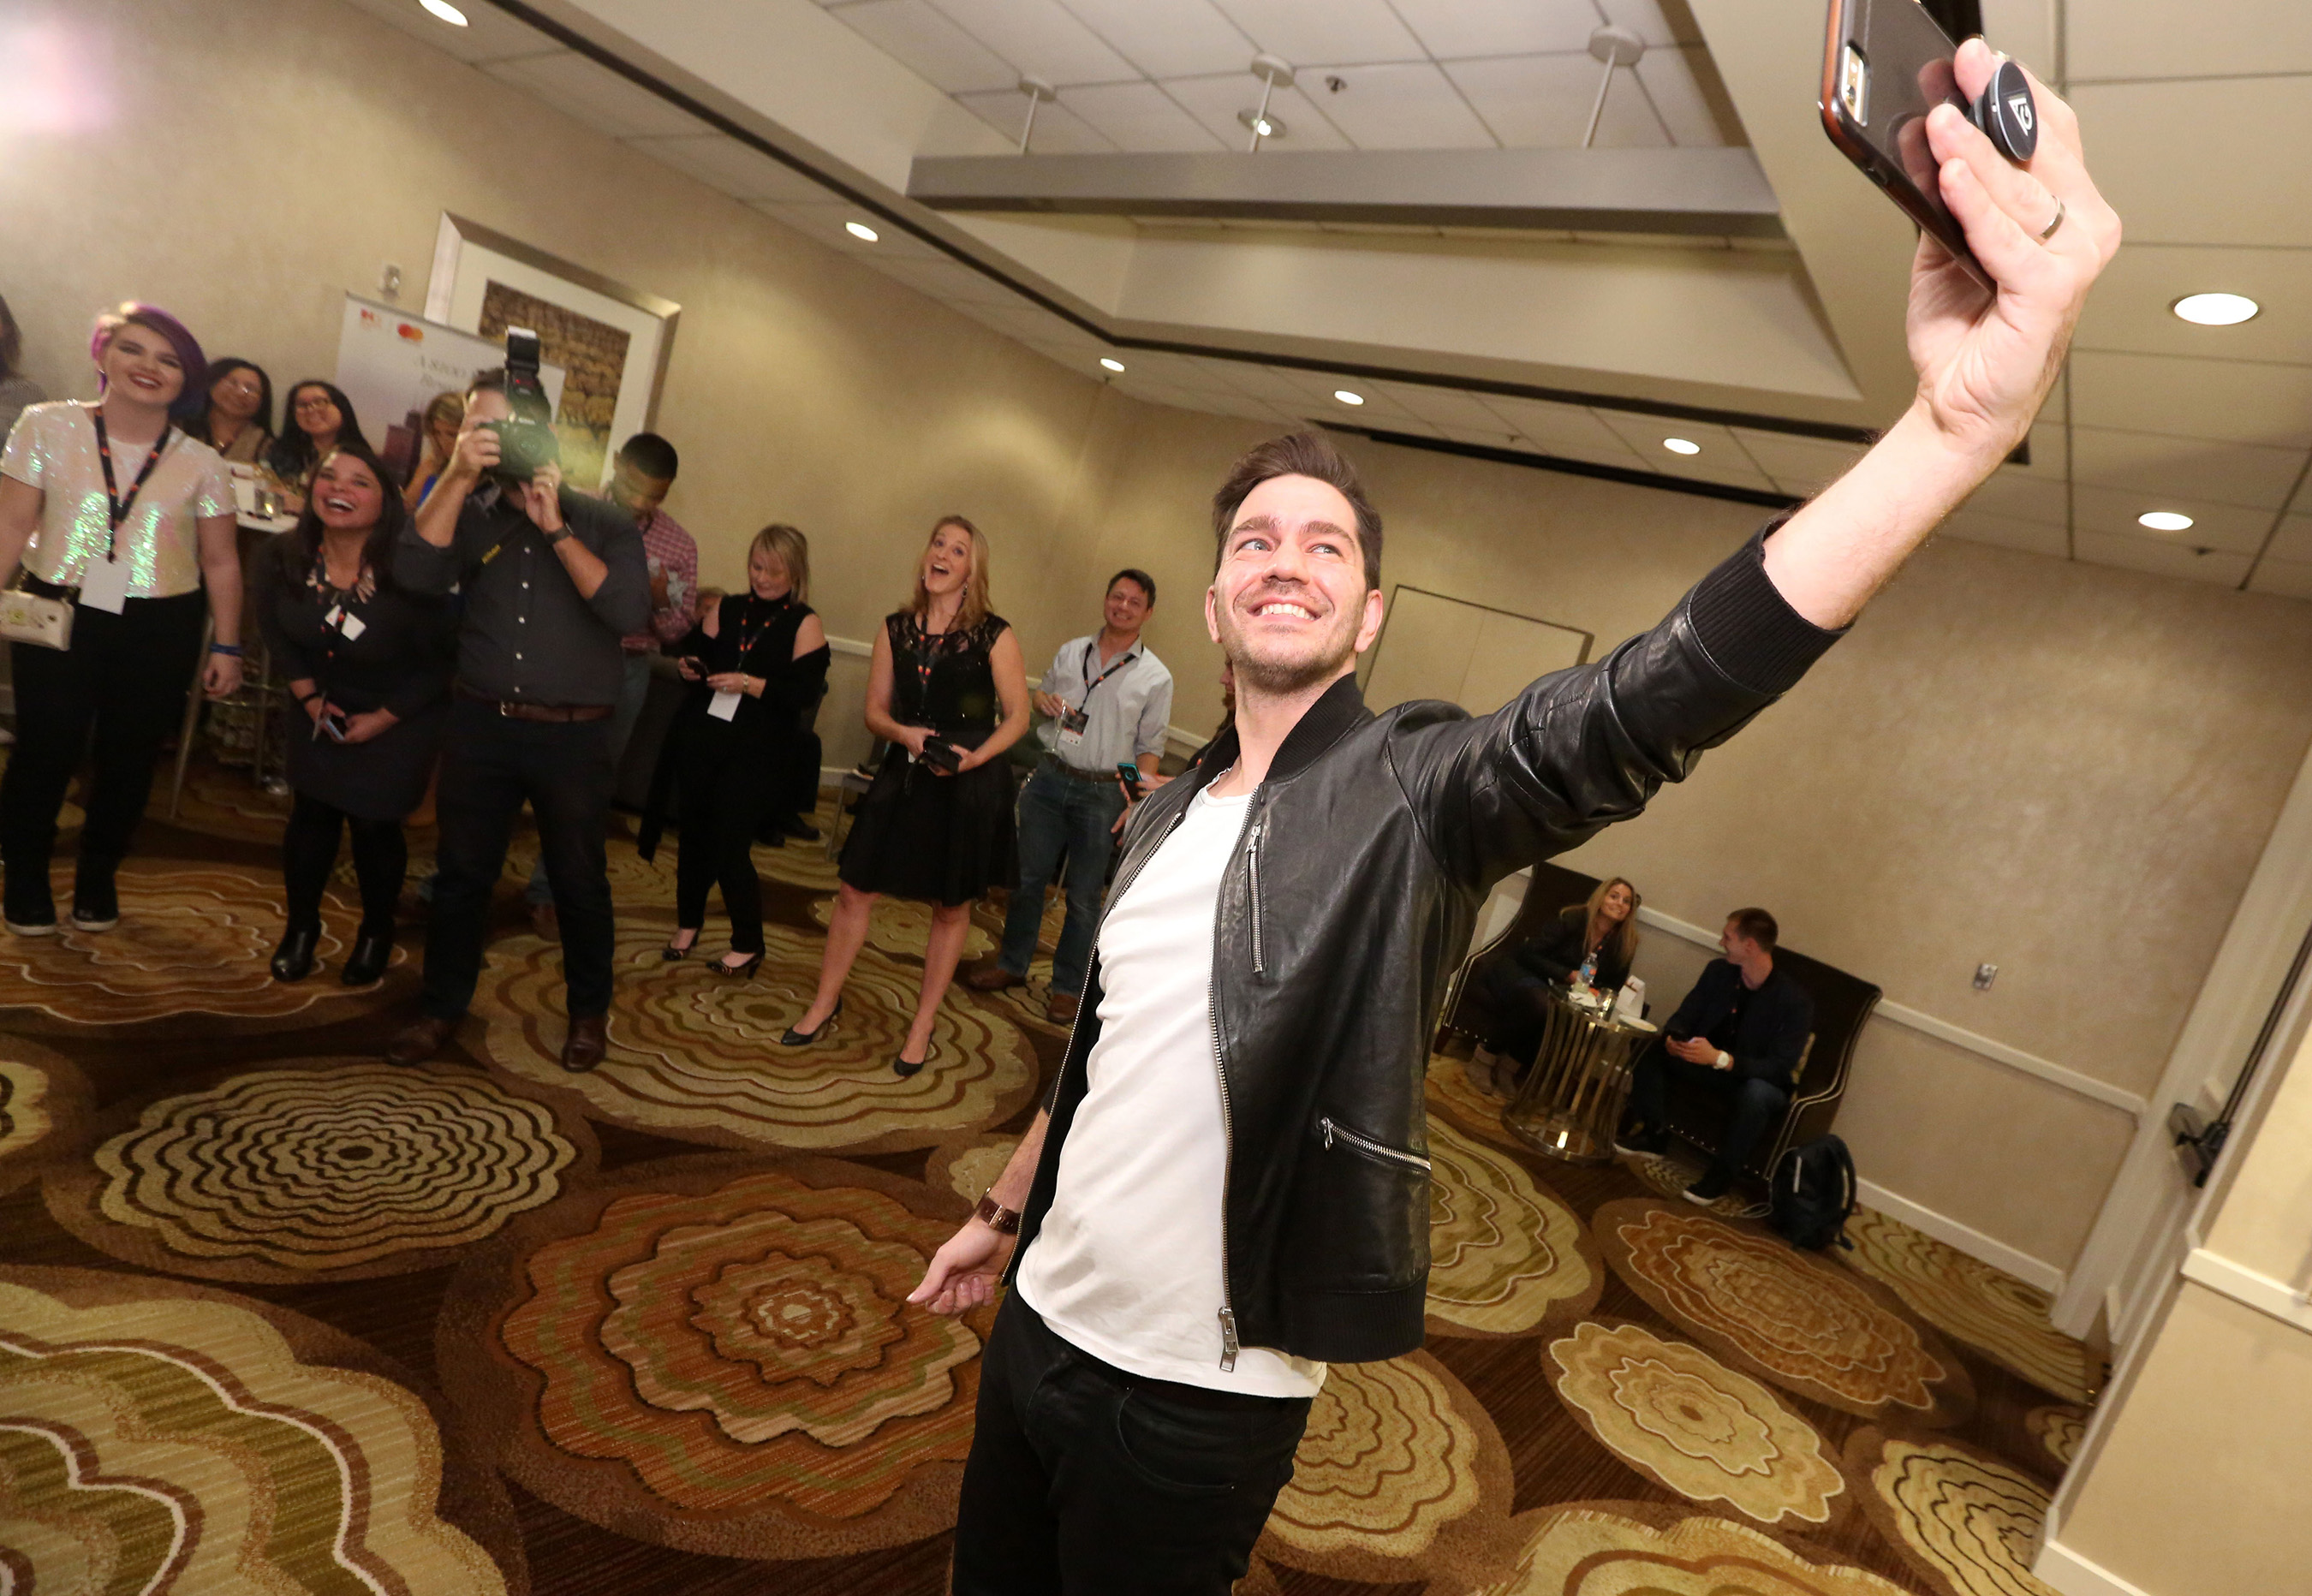 Andy Grammer joined IHG Rewards Club® to kick-off the brand's new Priceless Experiences campaign that brings members the excitement of the unexpected this winter.